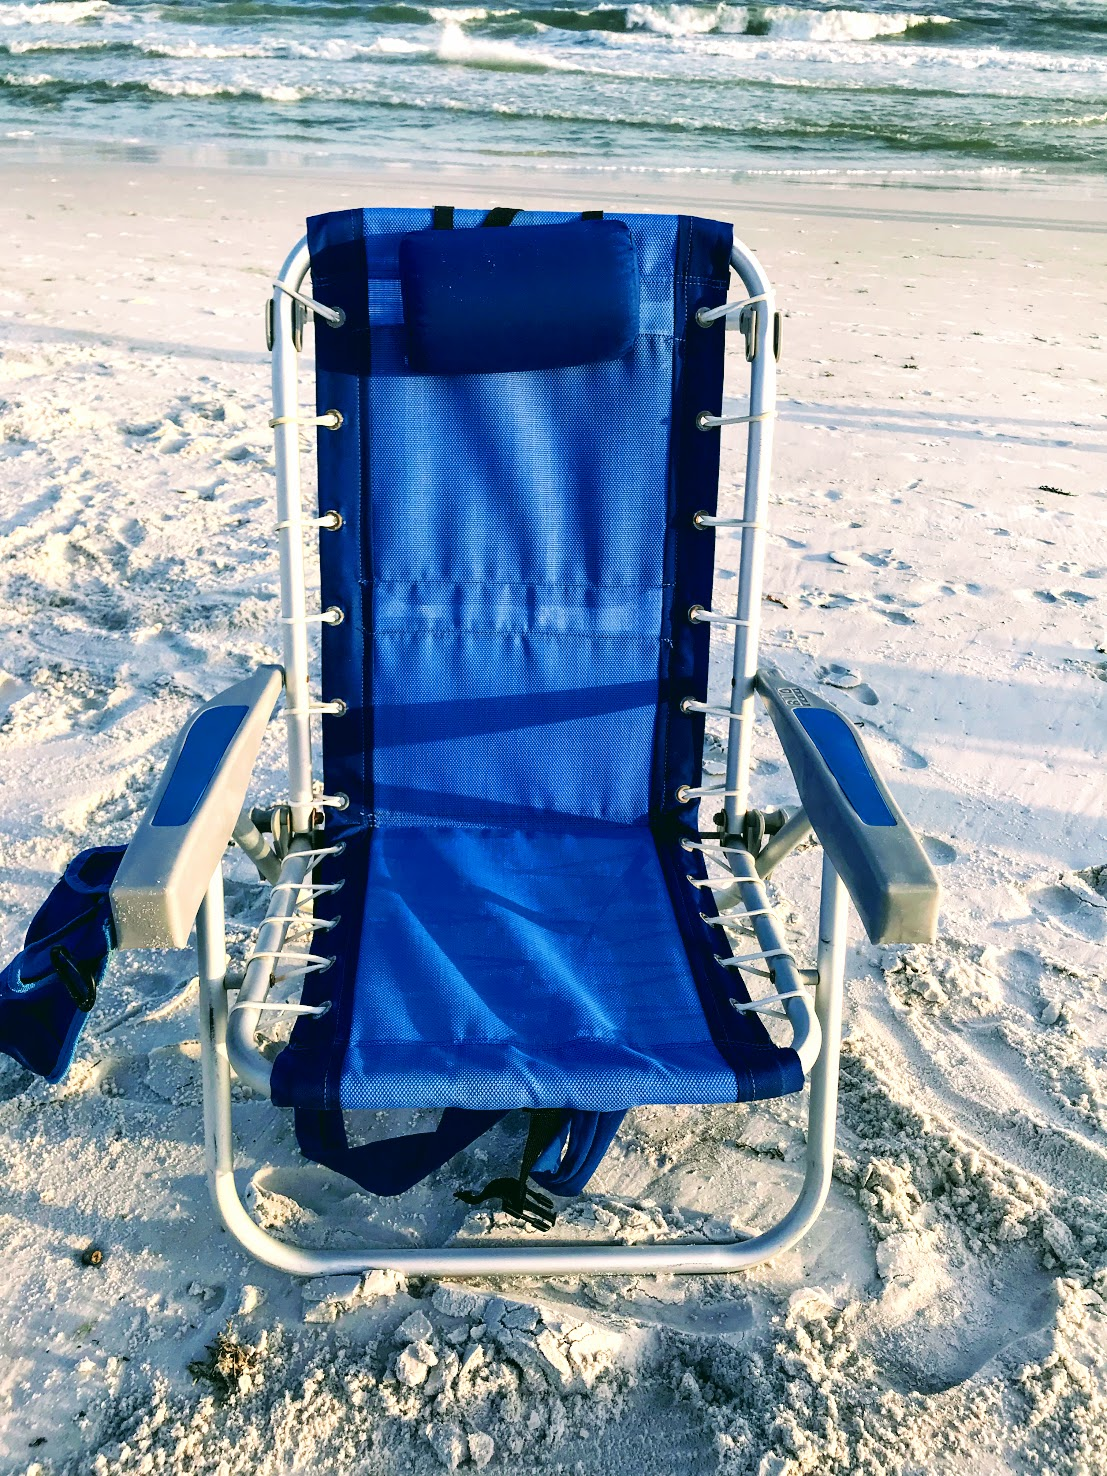 Rio beach chairs with coolers